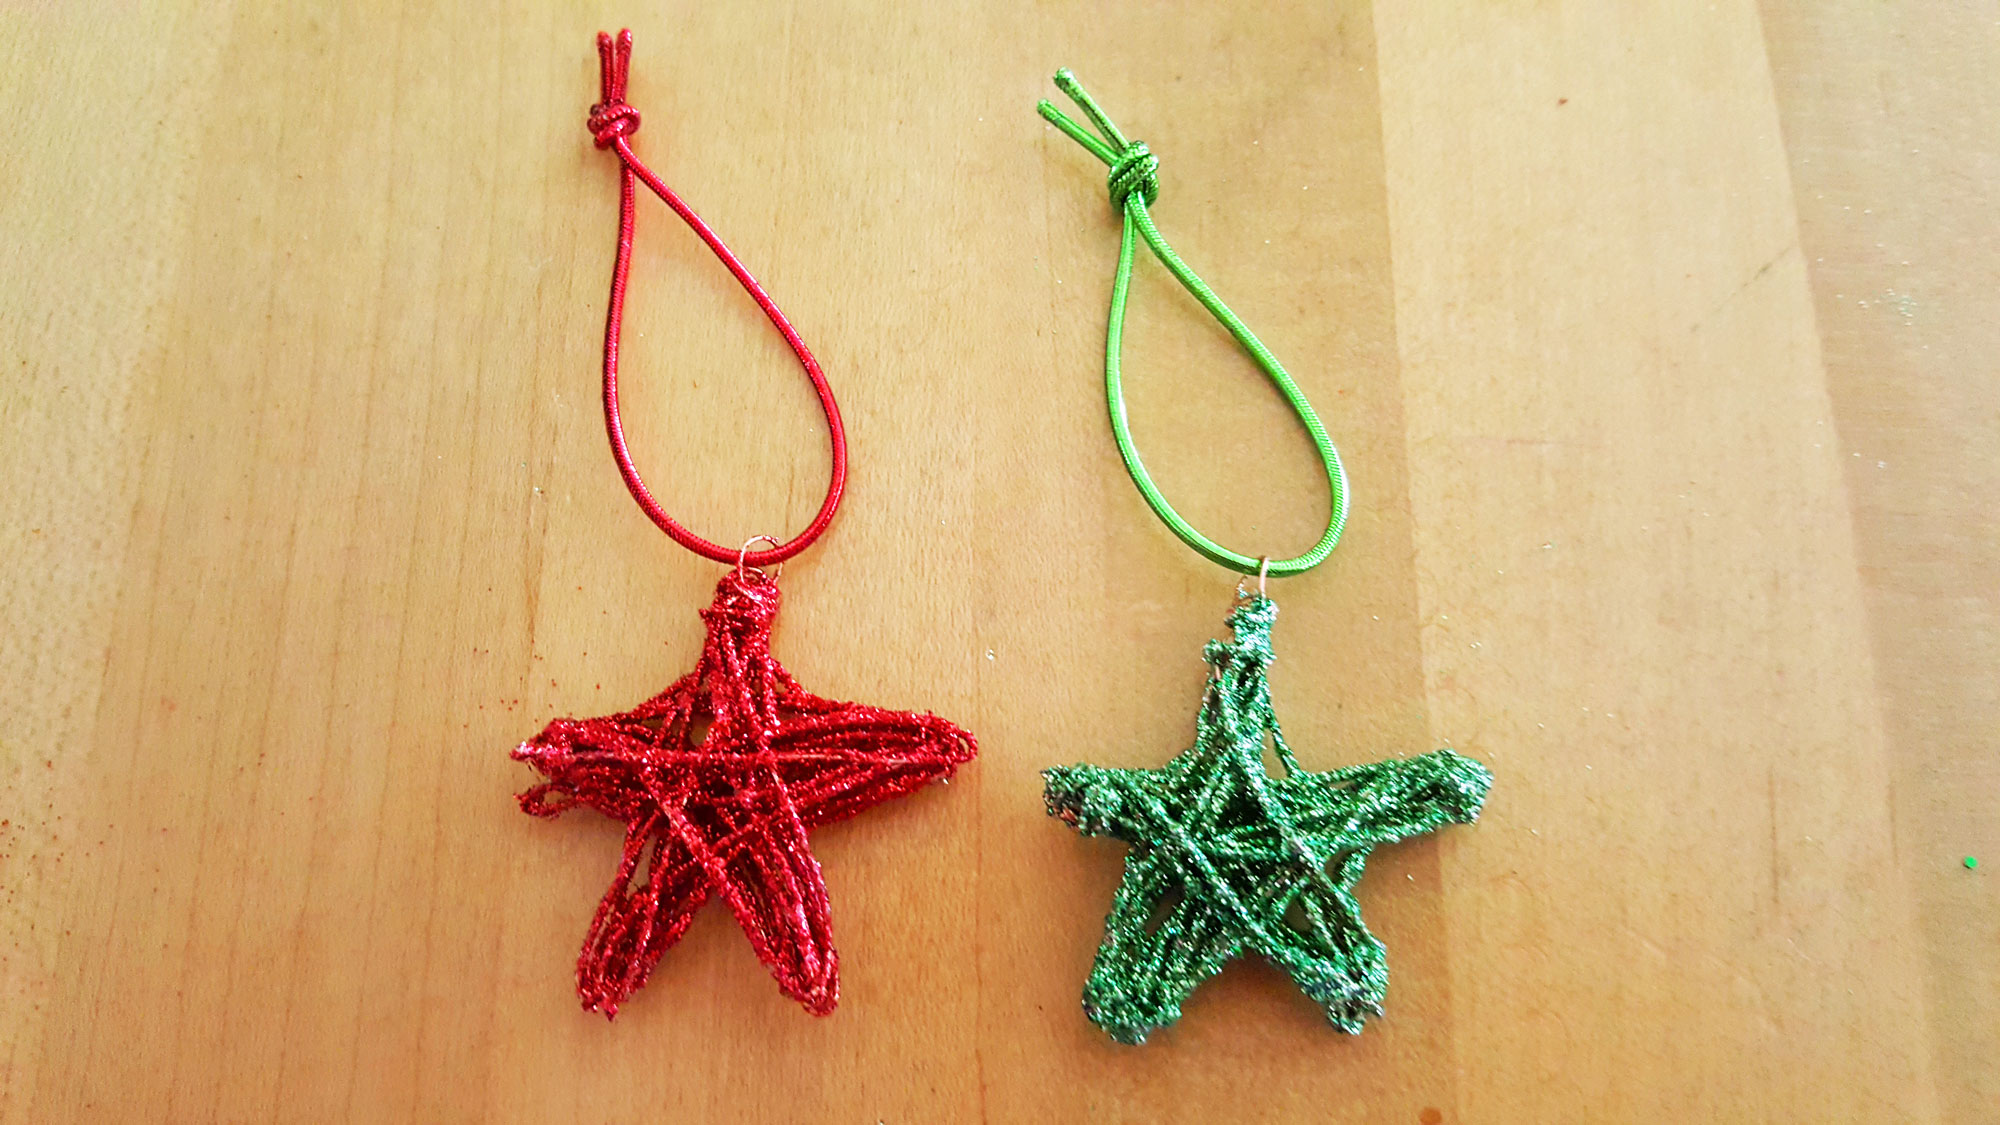 A red and green DIY star ornament side by side on a counter | OrnamentShop.com